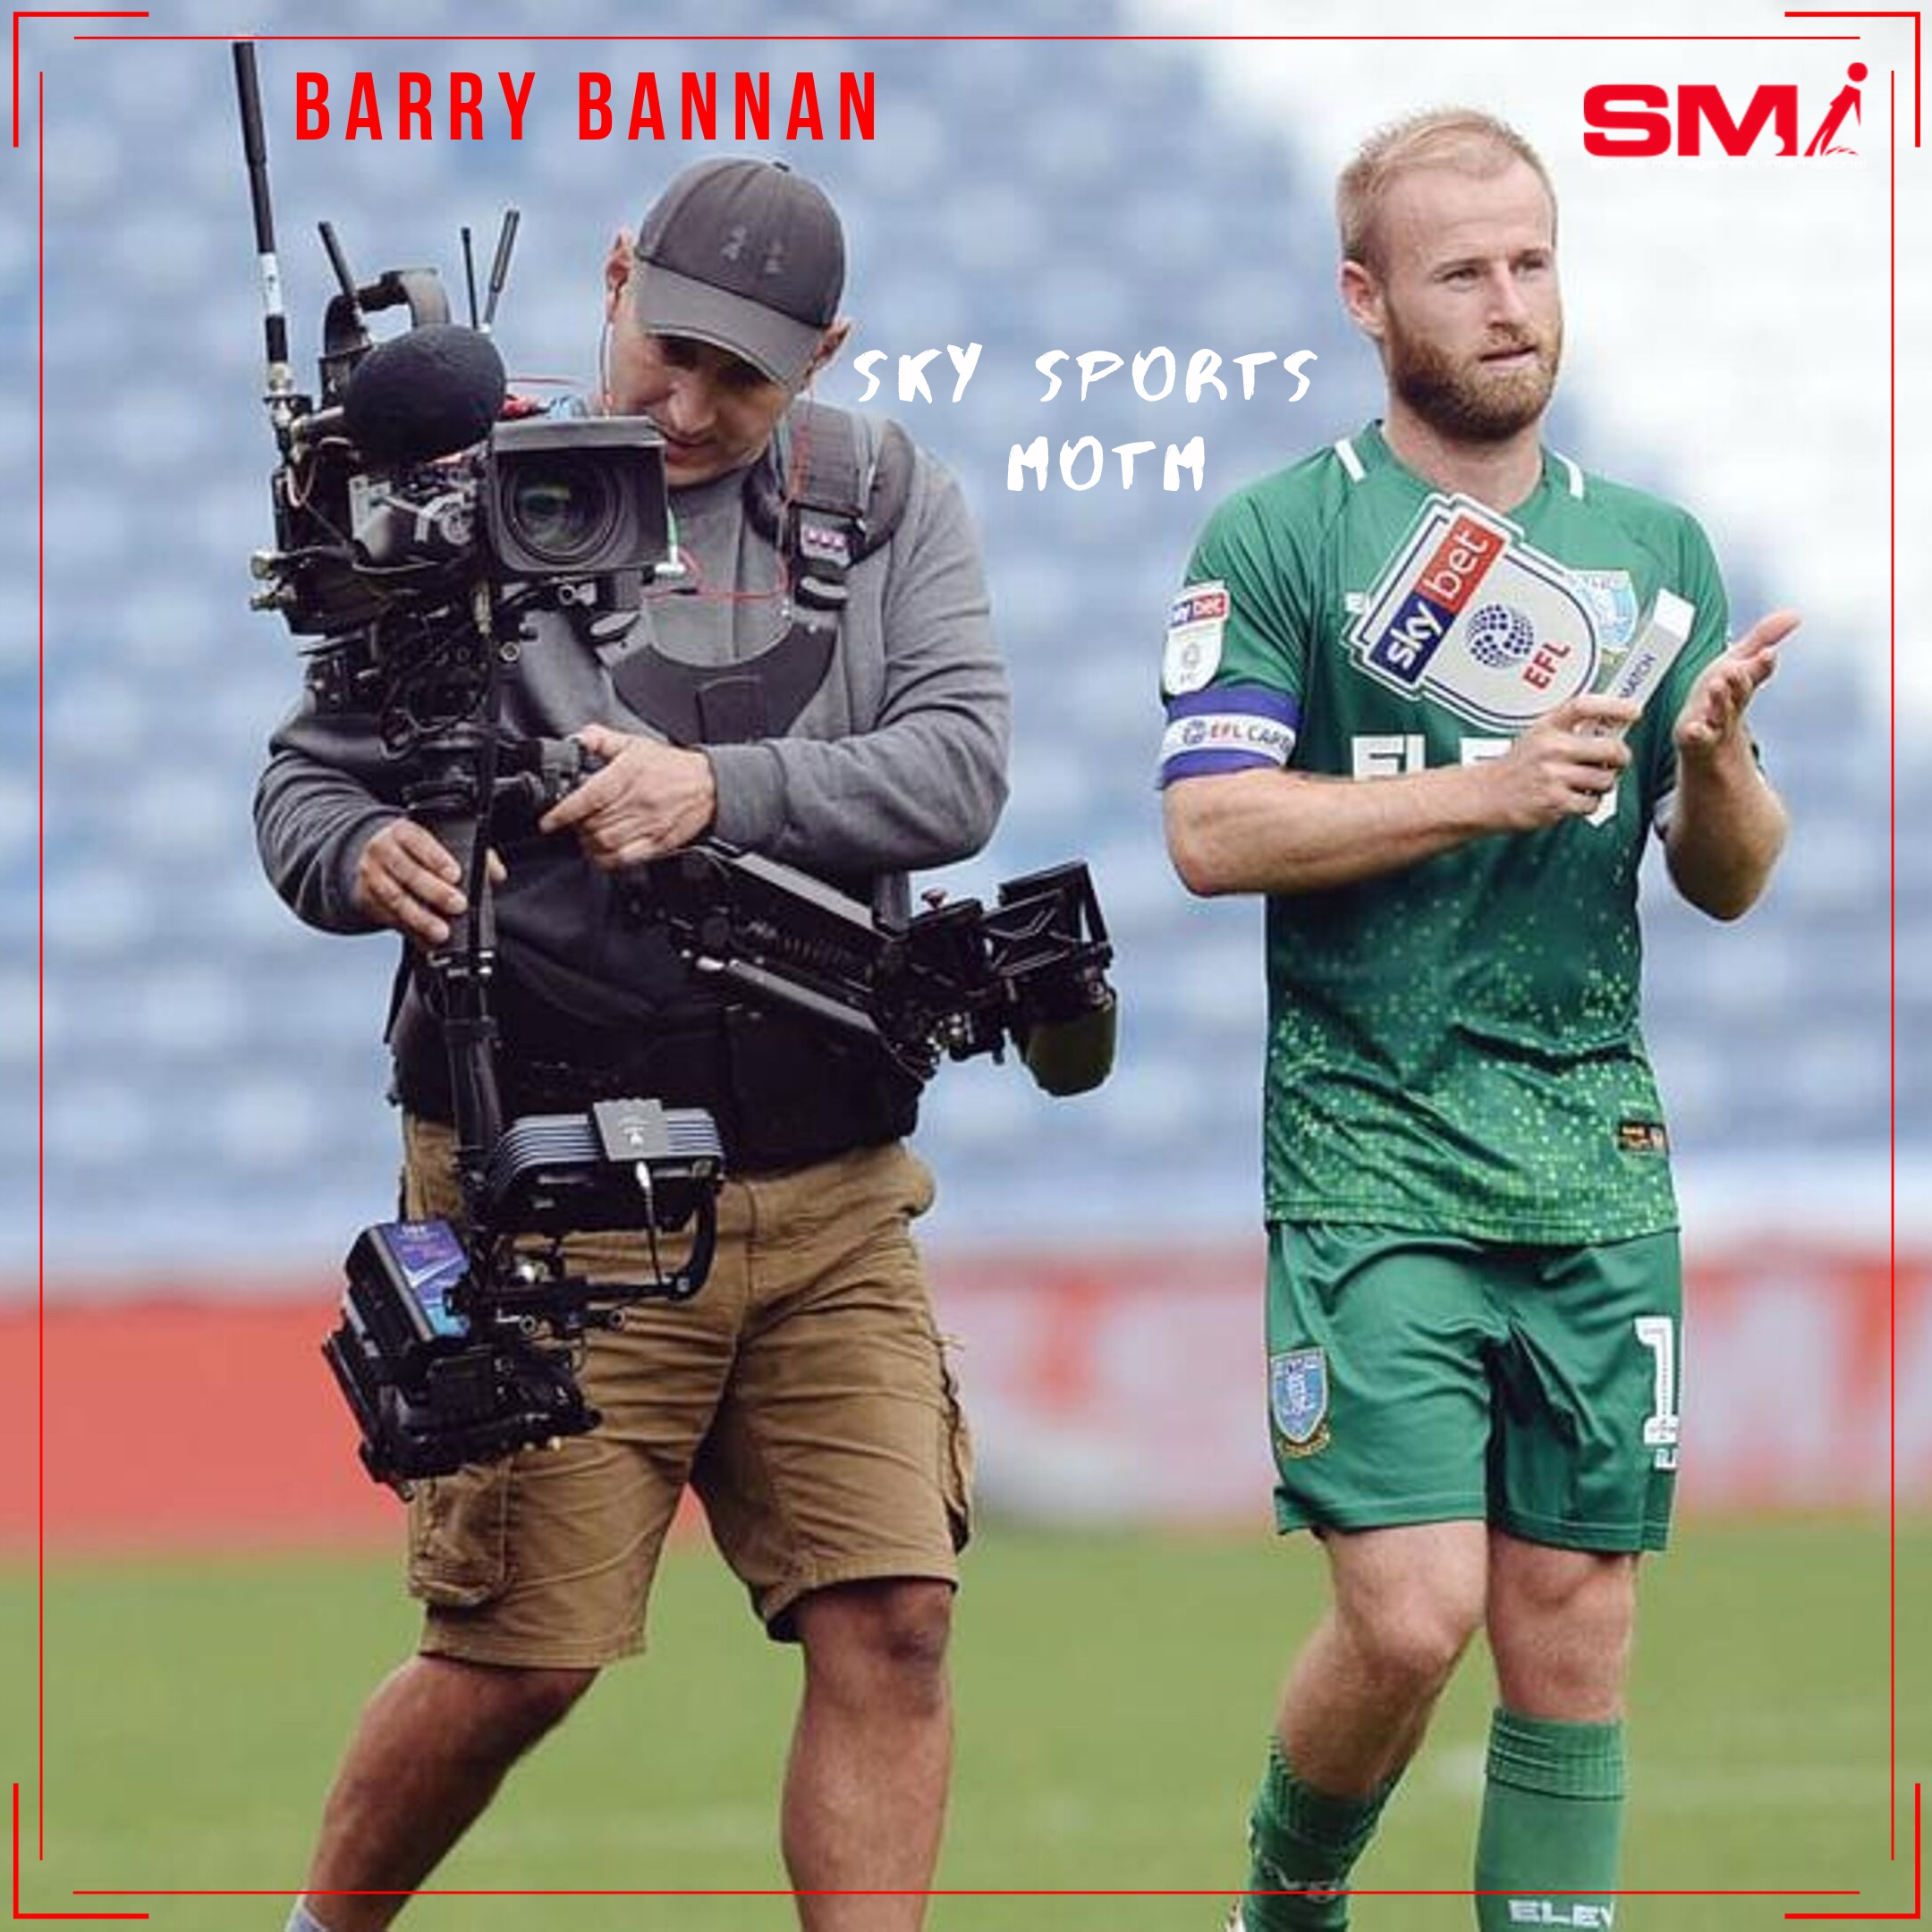 Bannan wins MOTM on his 150th Owls appearance